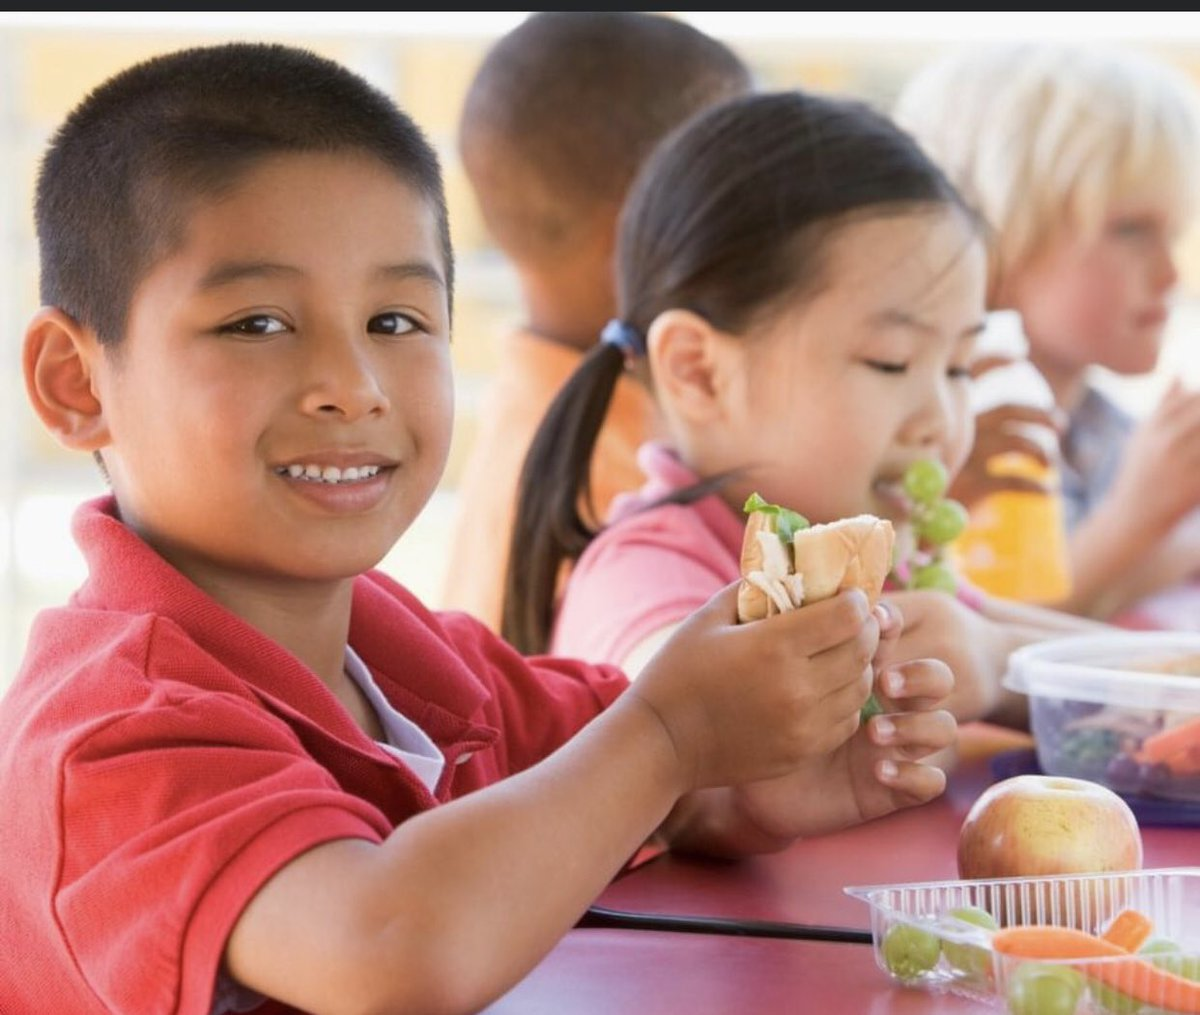 All nine DeKalb recreation centers will distribute meals from 11 a.m. to 1 p.m., Monday through Friday. For more information contact, LaShanda Davis, public relations specialist, at (404) 710-6331.